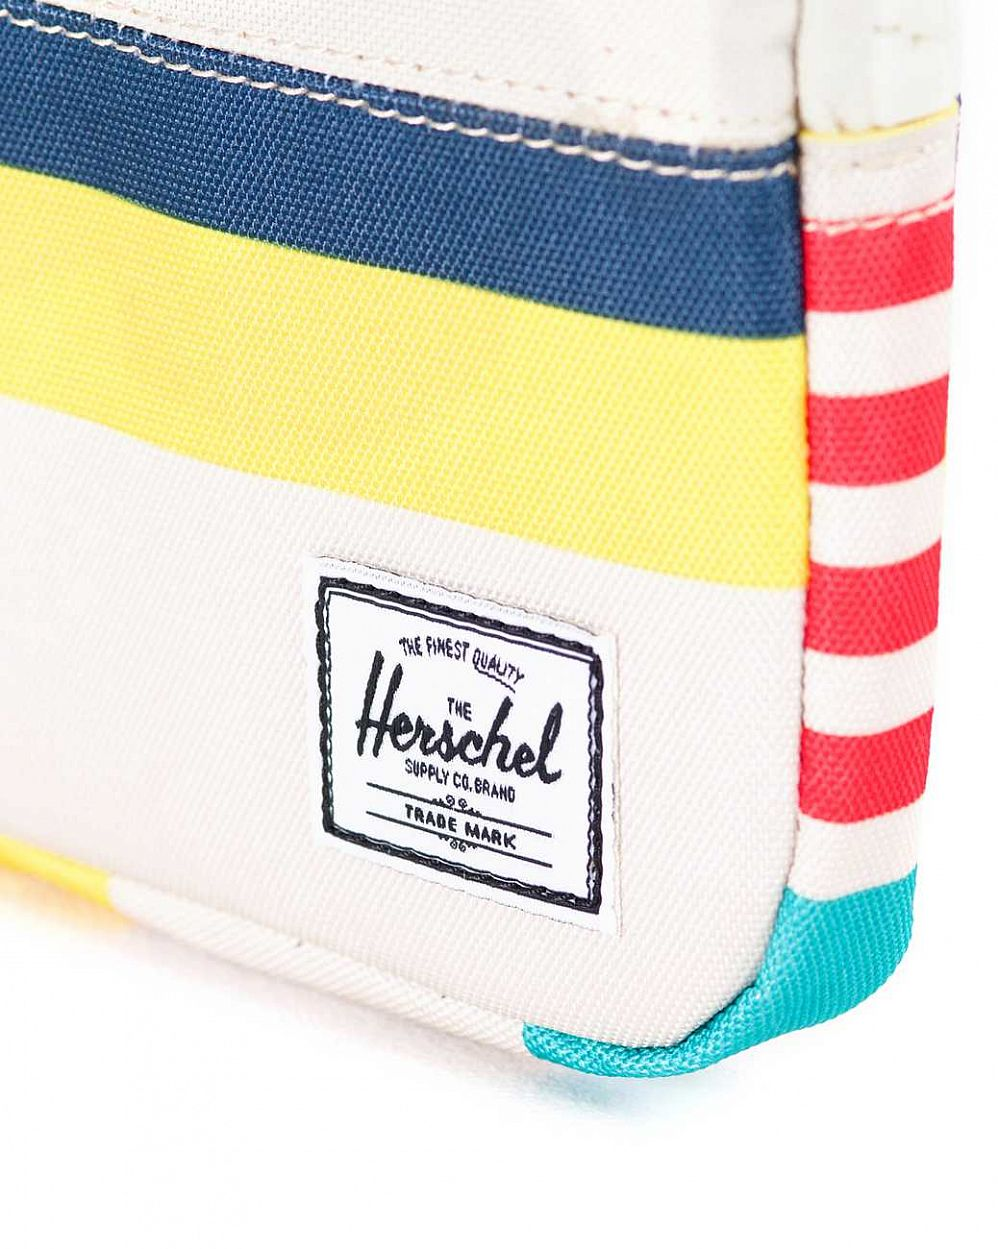 Чехол Herschel Anchor Sleeve для iPad Mini Stripe Bone интернет-магазин в Москве